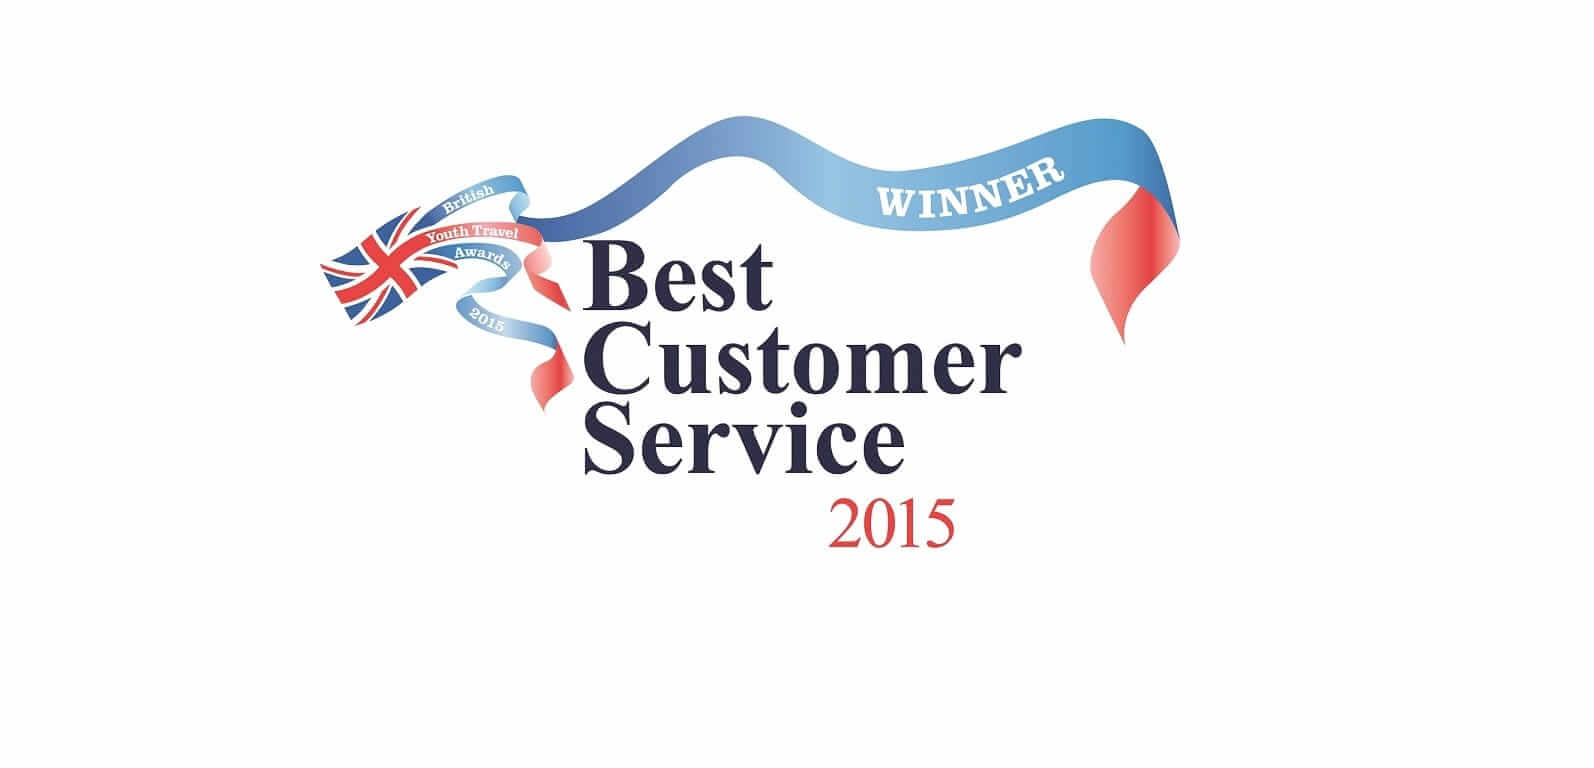 Best Customer Service 2015 WINNER!